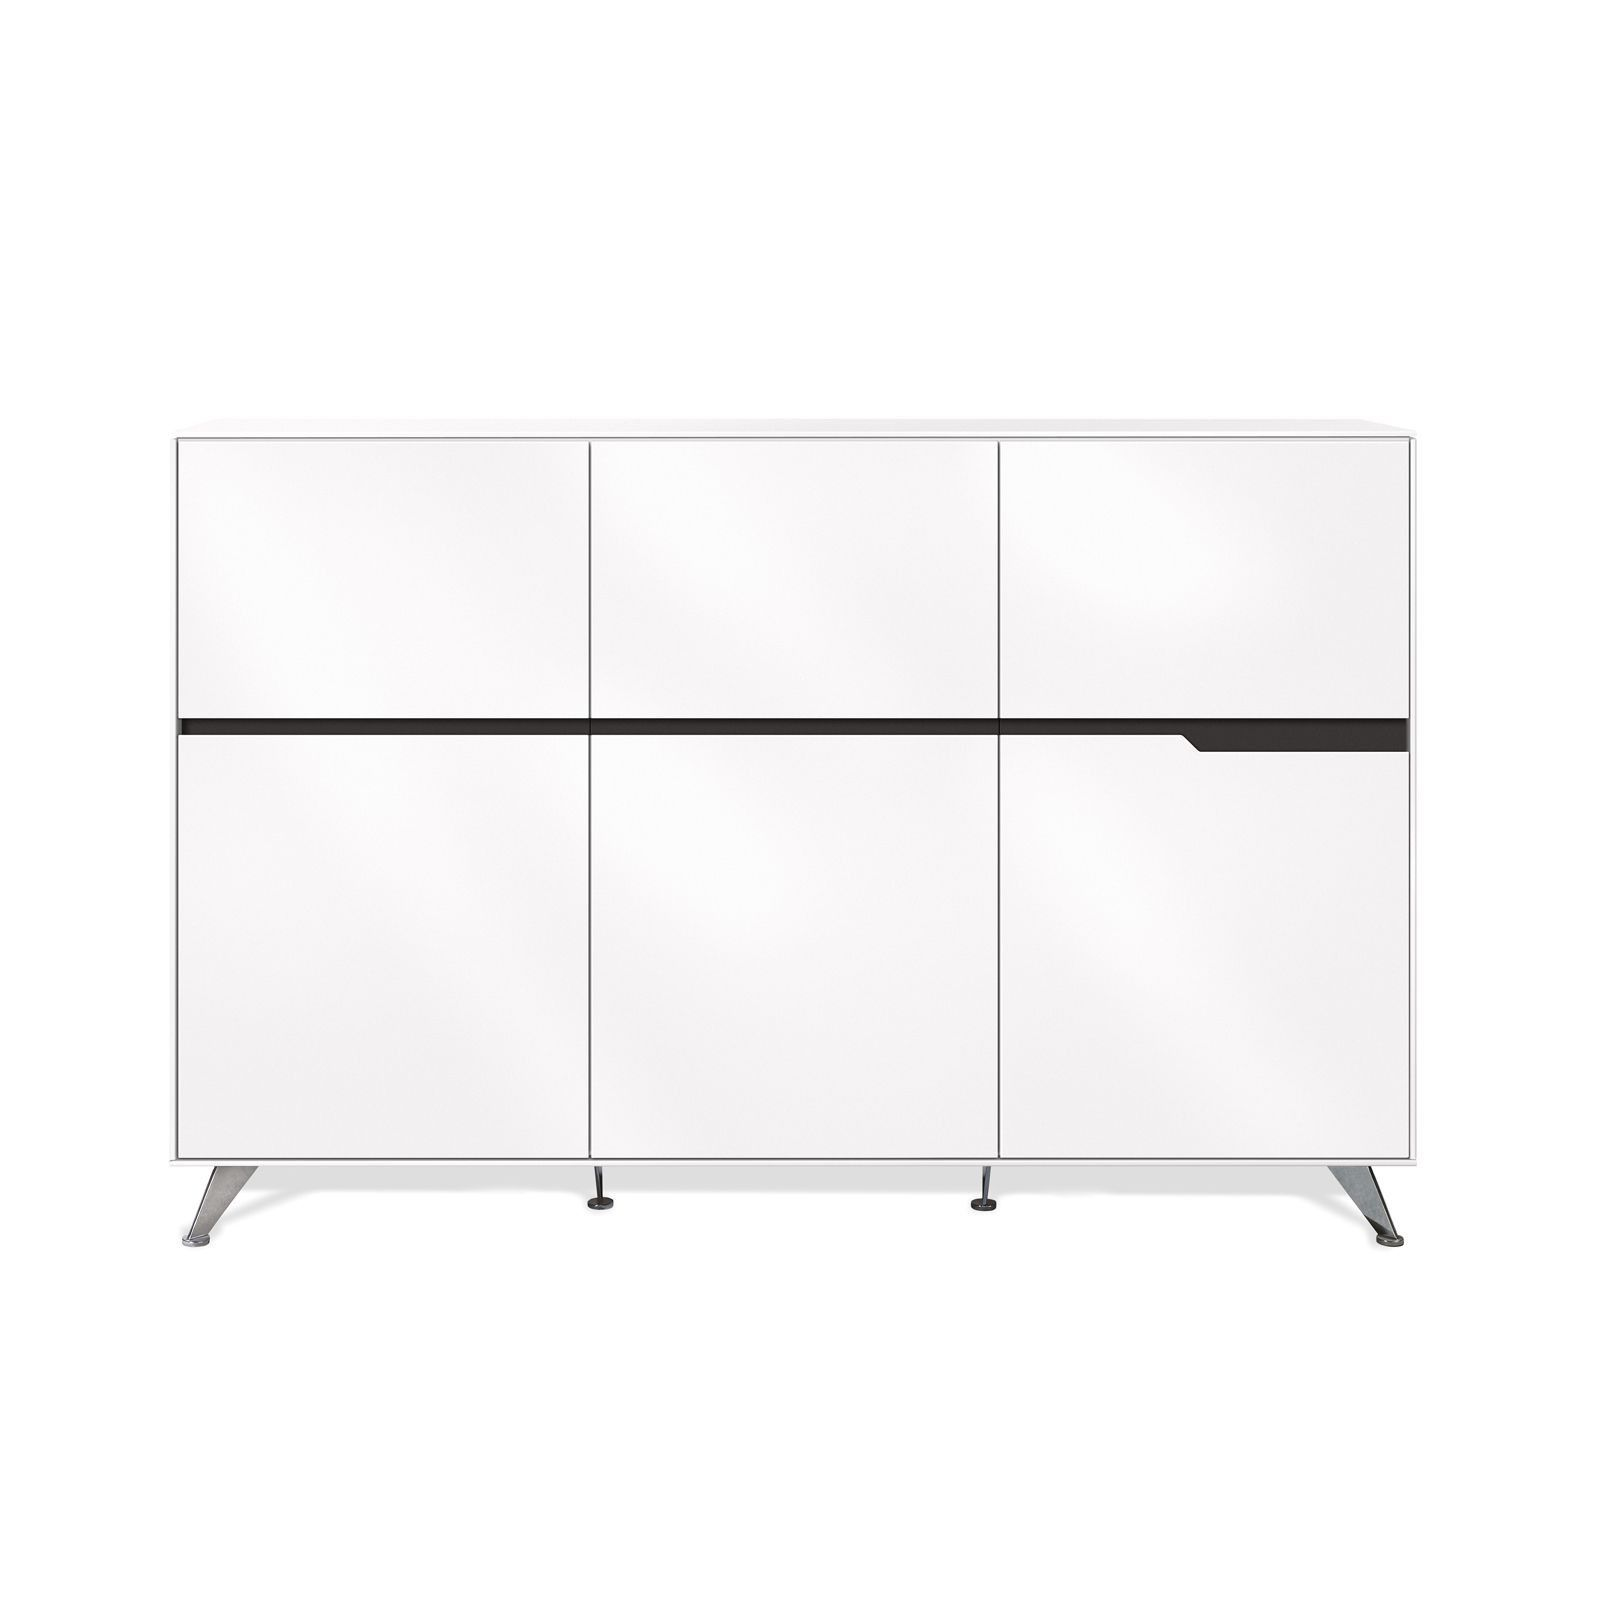 aspvik cabinet with file drawer  modern  filing cabinets and  - aspvik cabinet with file drawer  modern  filing cabinets and carts   byikea found on polyvore featuring home furniture storage  shelves fi…